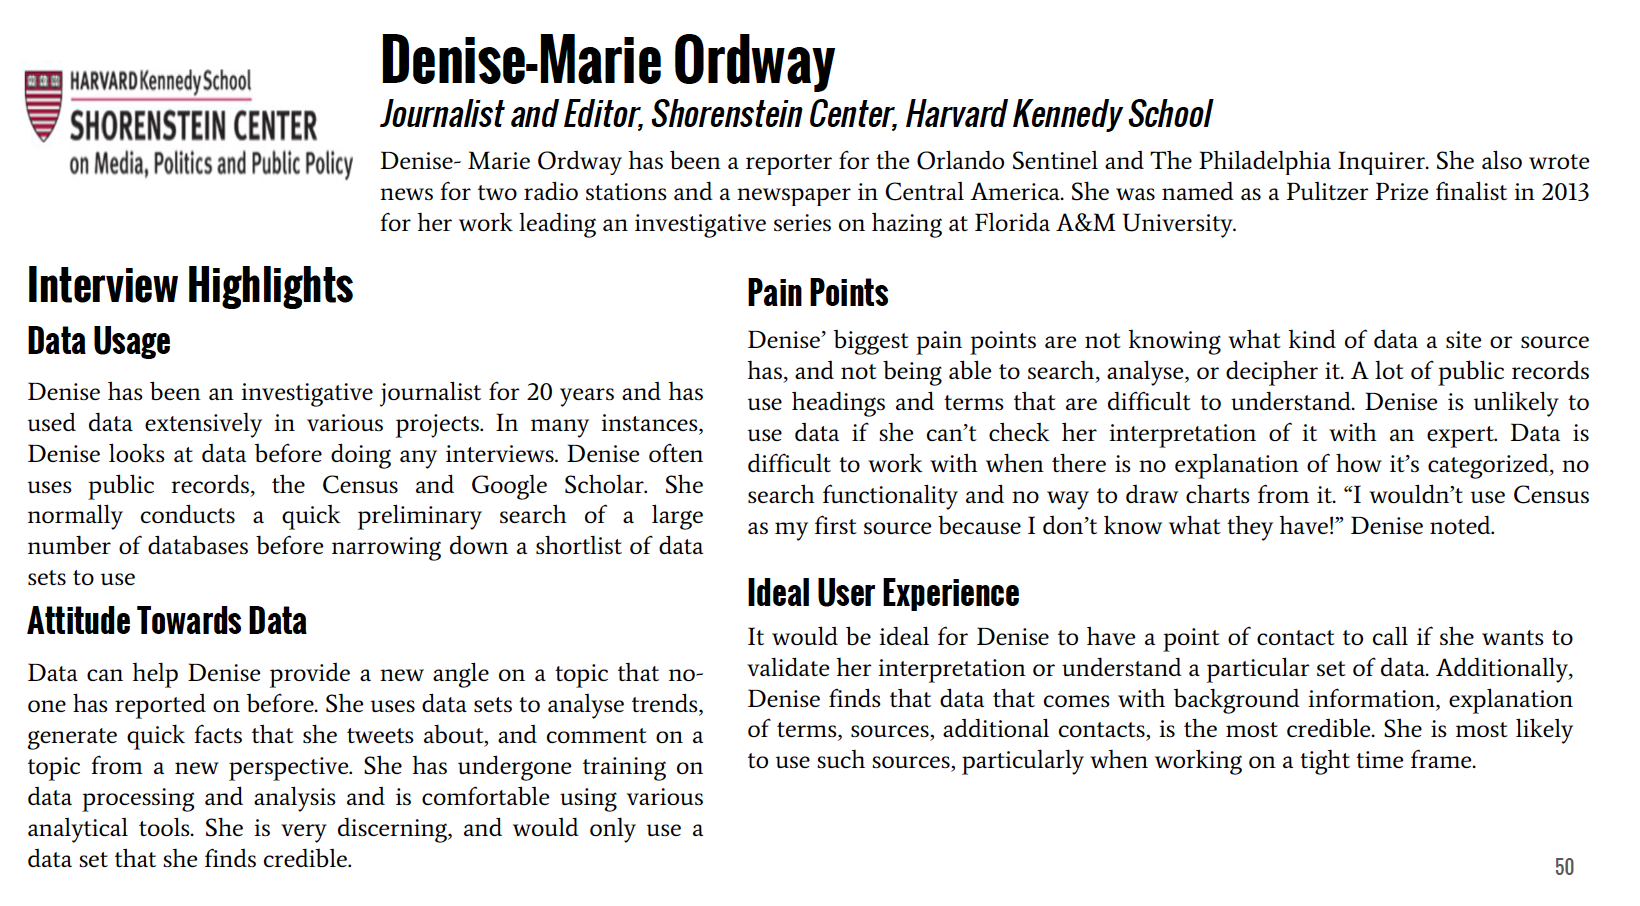 Interview summary for Denise-Marie Ordway, Journalist.